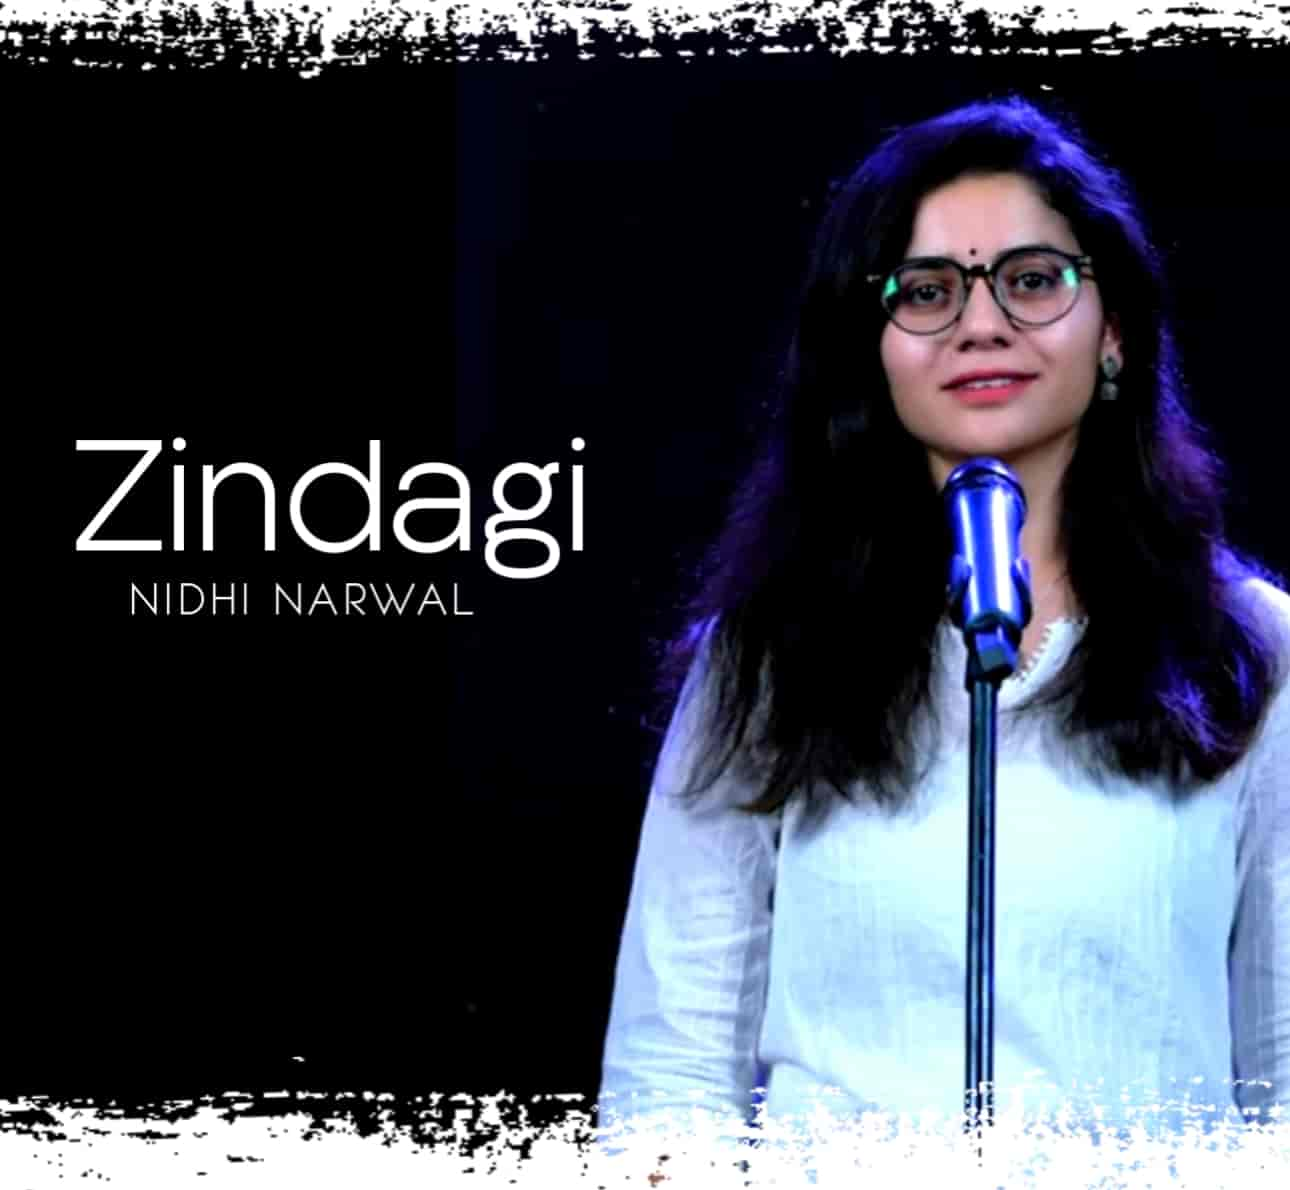 A very young, Famous and YouTube poetess Nidhi Narwal come back again with a beautiful poerty which is titled 'Zindagi'.